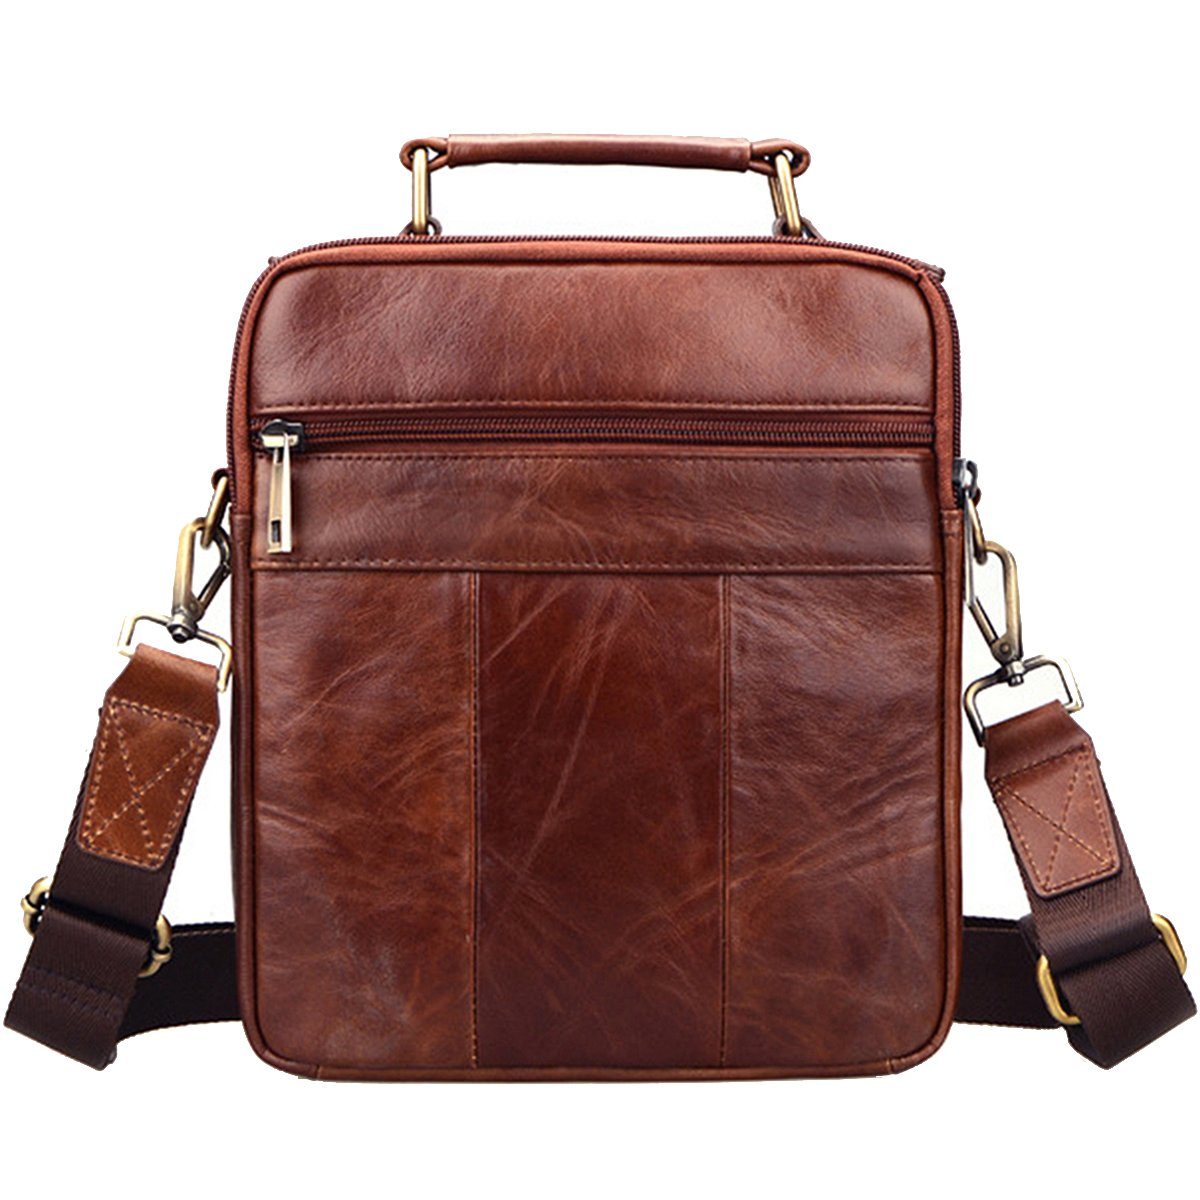 Sunmig Men's Genuine Leather Shoulder Bag Messenger Briefcase CrossBody Handbag (Brown) by Sunmig (Image #5)